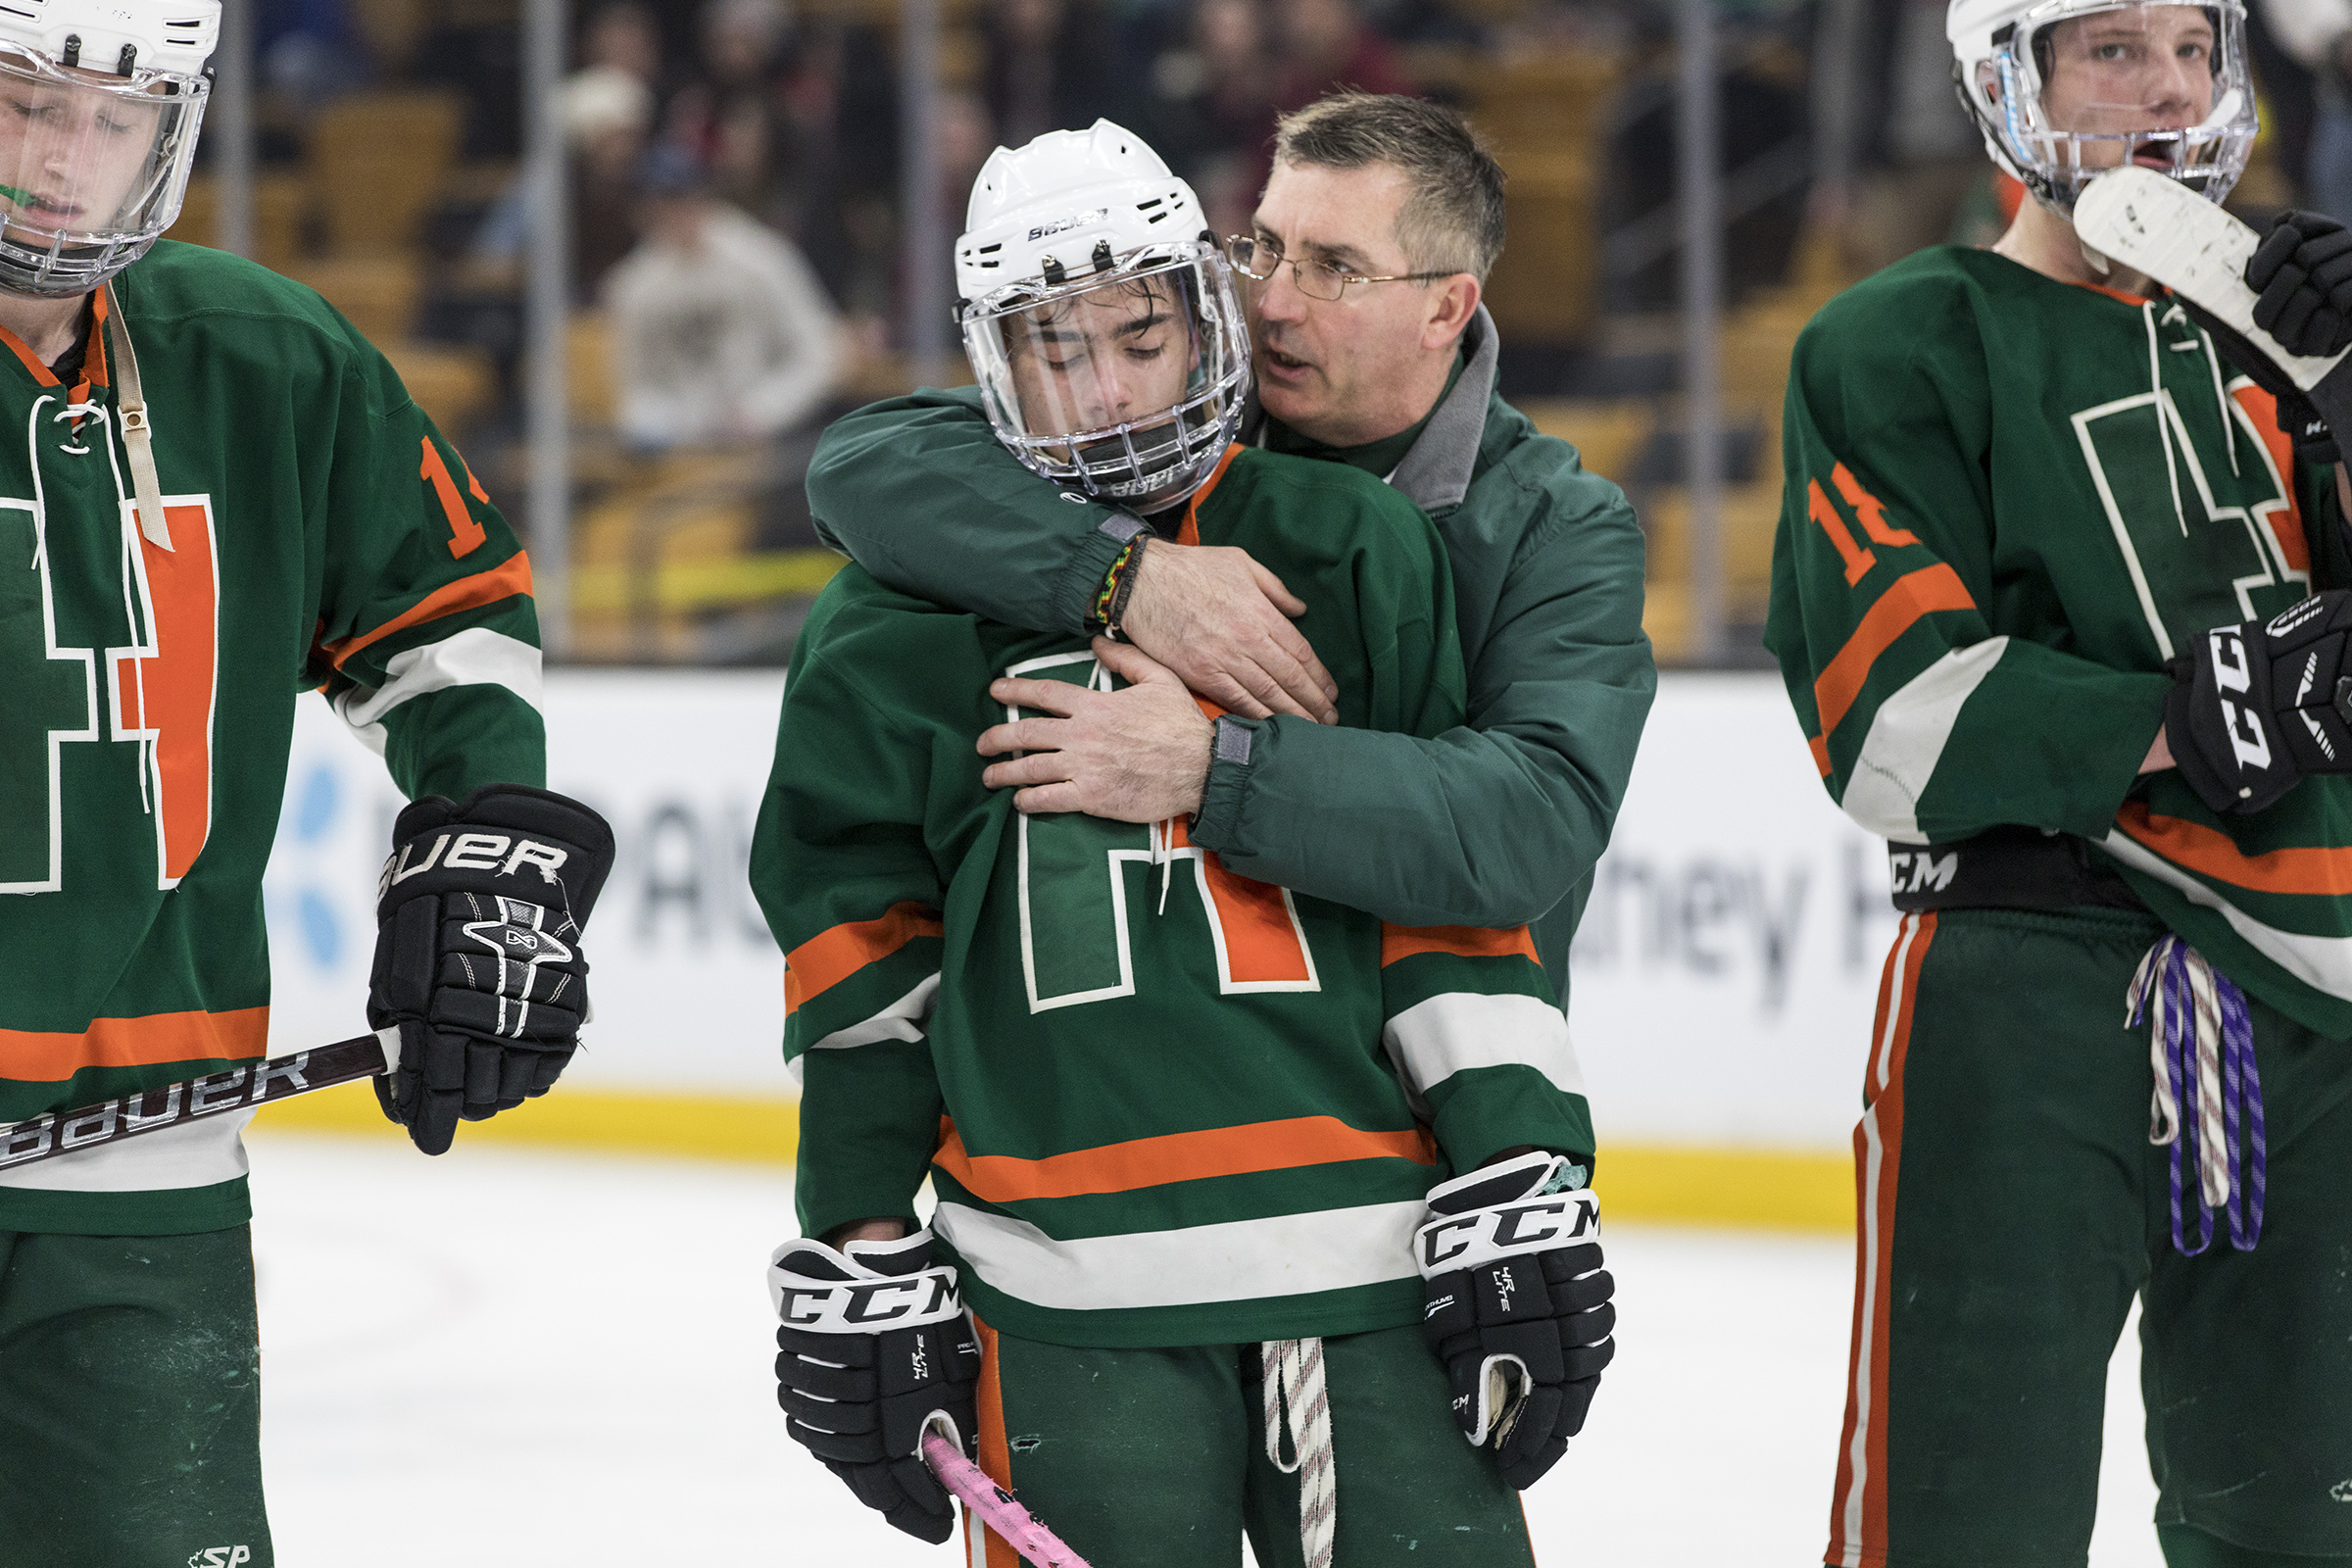 Hopkinton assistant coach Scott O'Connor hugs junior Kyle Rogers after the Mountaineers of Wachusett Regional defeated the Hillers, 3-2, in the Division 3 state championship game at the TD Garden in Boston, March 17, 2019